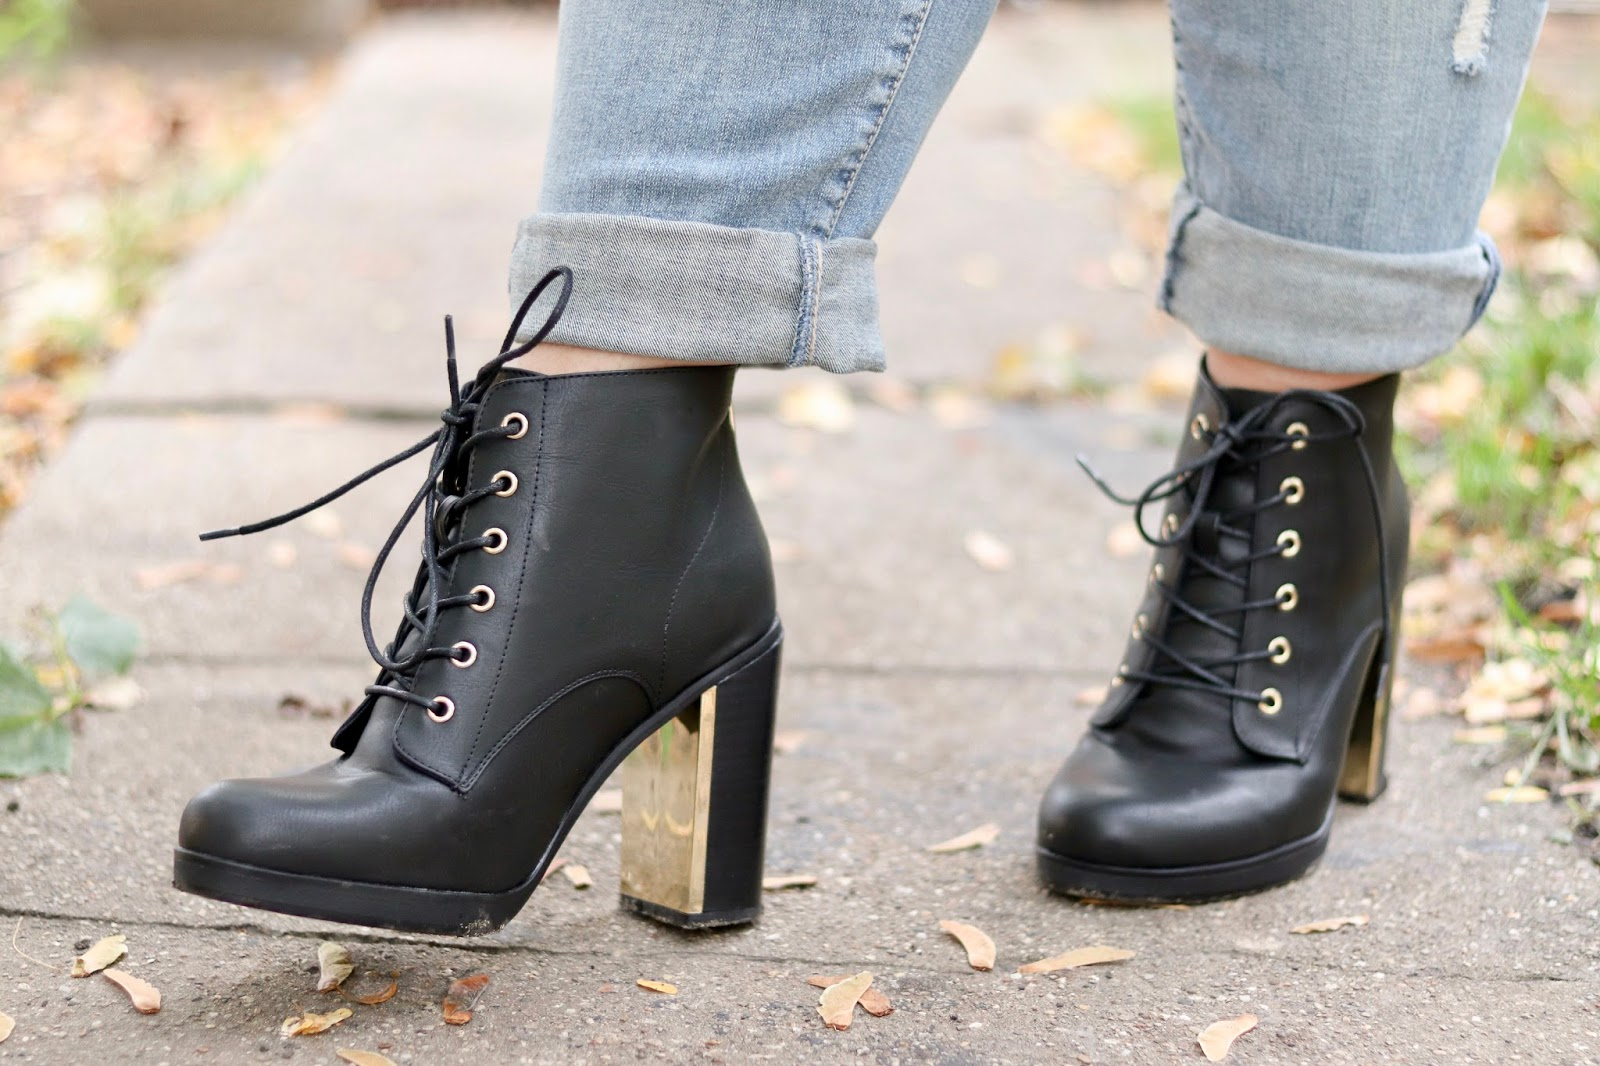 THE CHICEST COMBAT BOOTS YOU'VE EVER SEEN